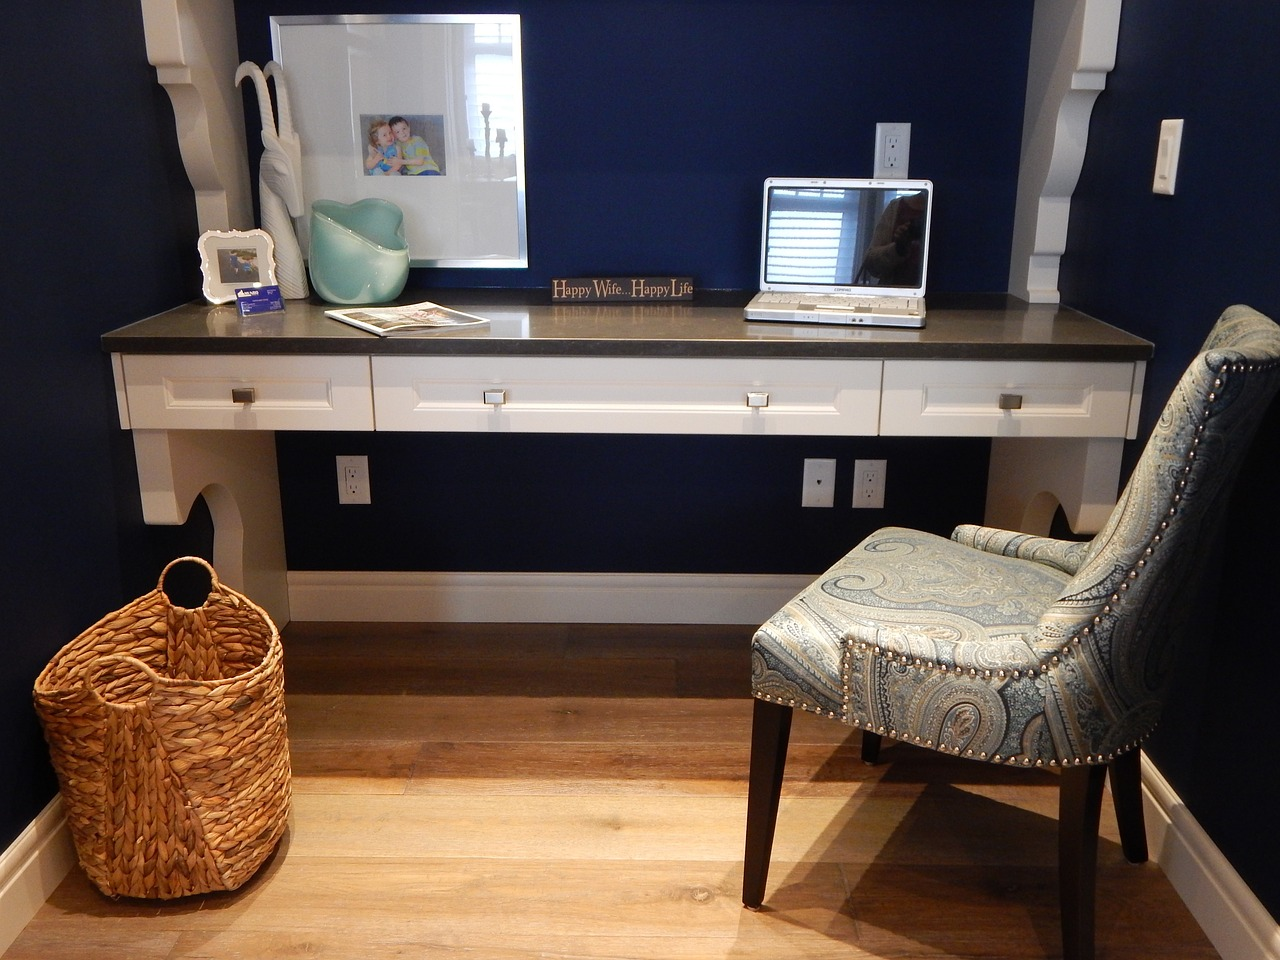 Work From Home? Find Your 'Water Cooler'